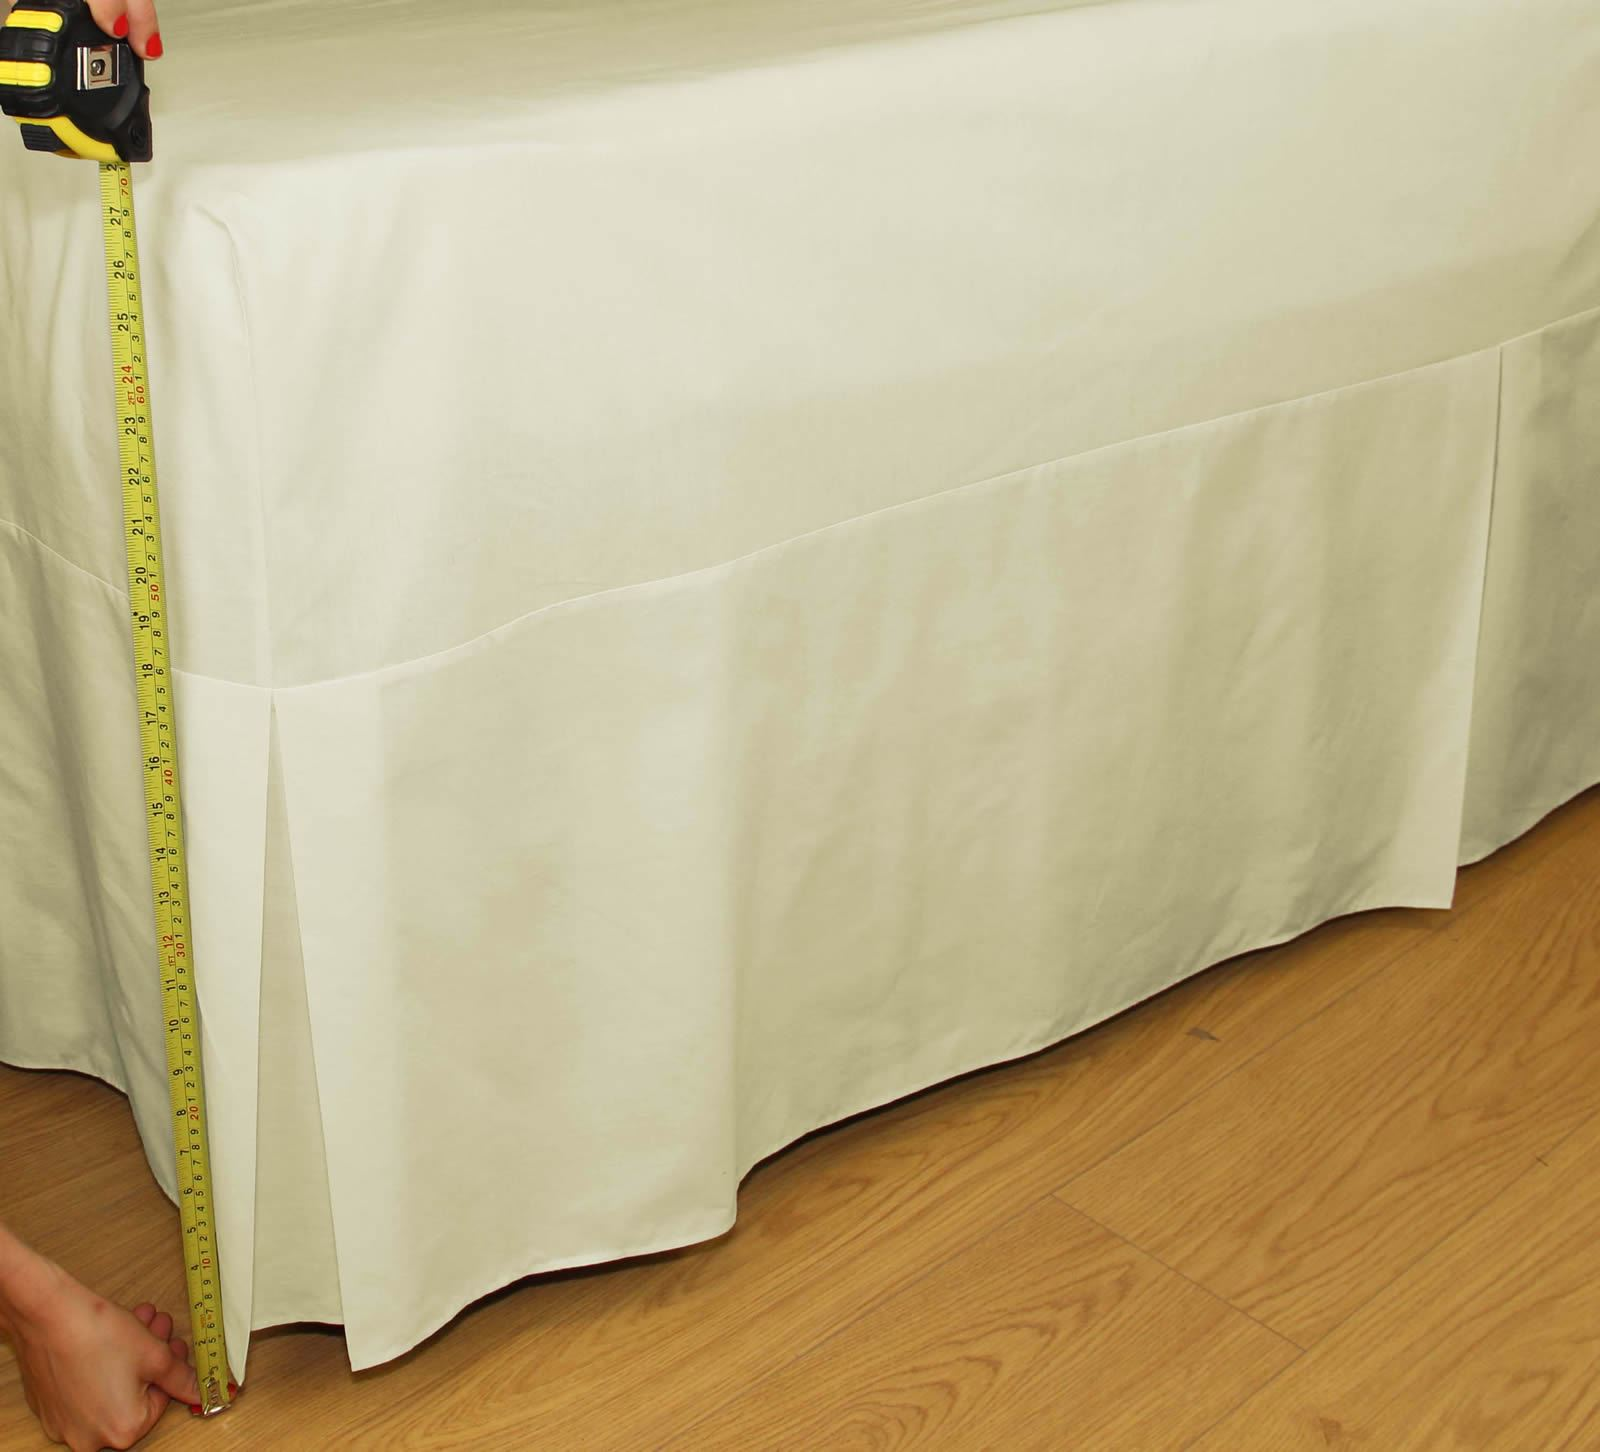 percale fitted valance sheet 180 thread count 26 extra deep box bed skirt ebay. Black Bedroom Furniture Sets. Home Design Ideas